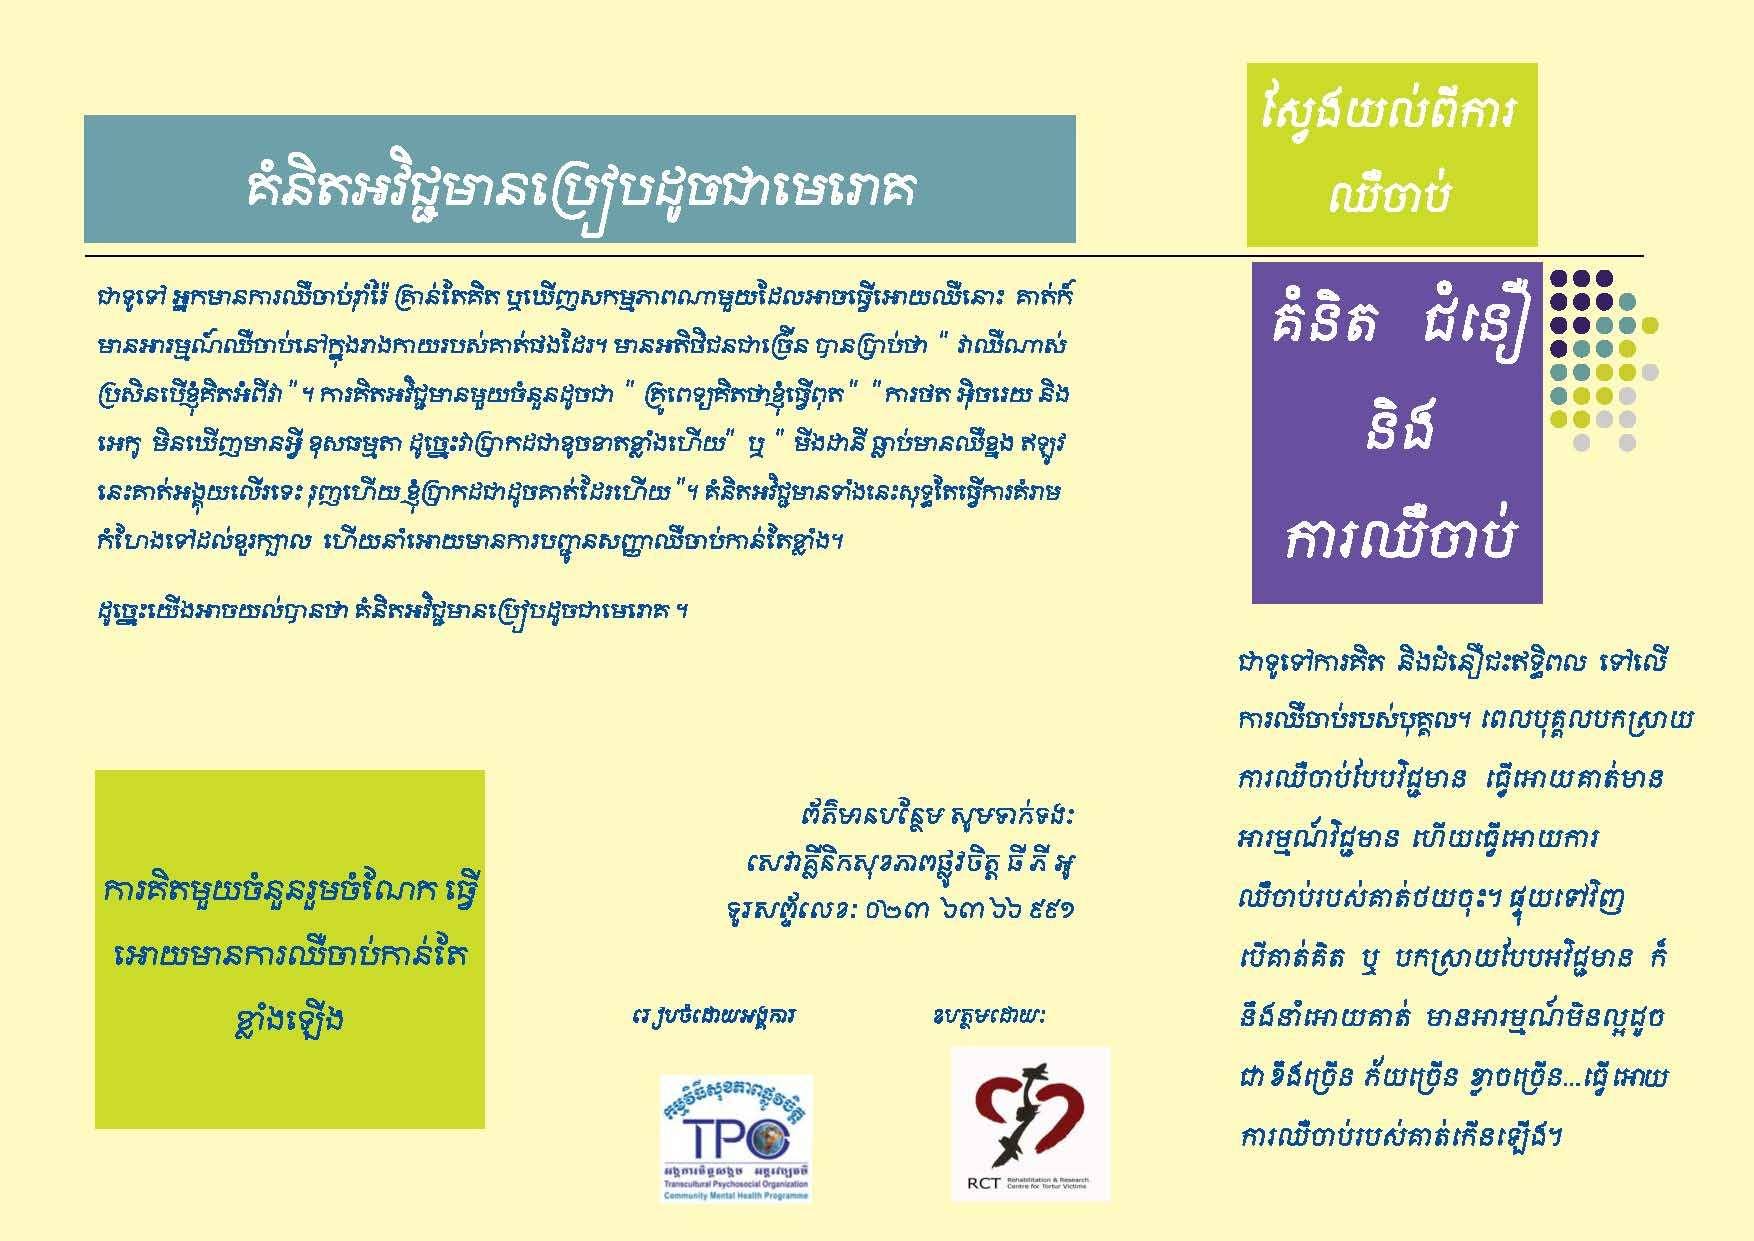 Leaflet-Thoght and belief-Khmer